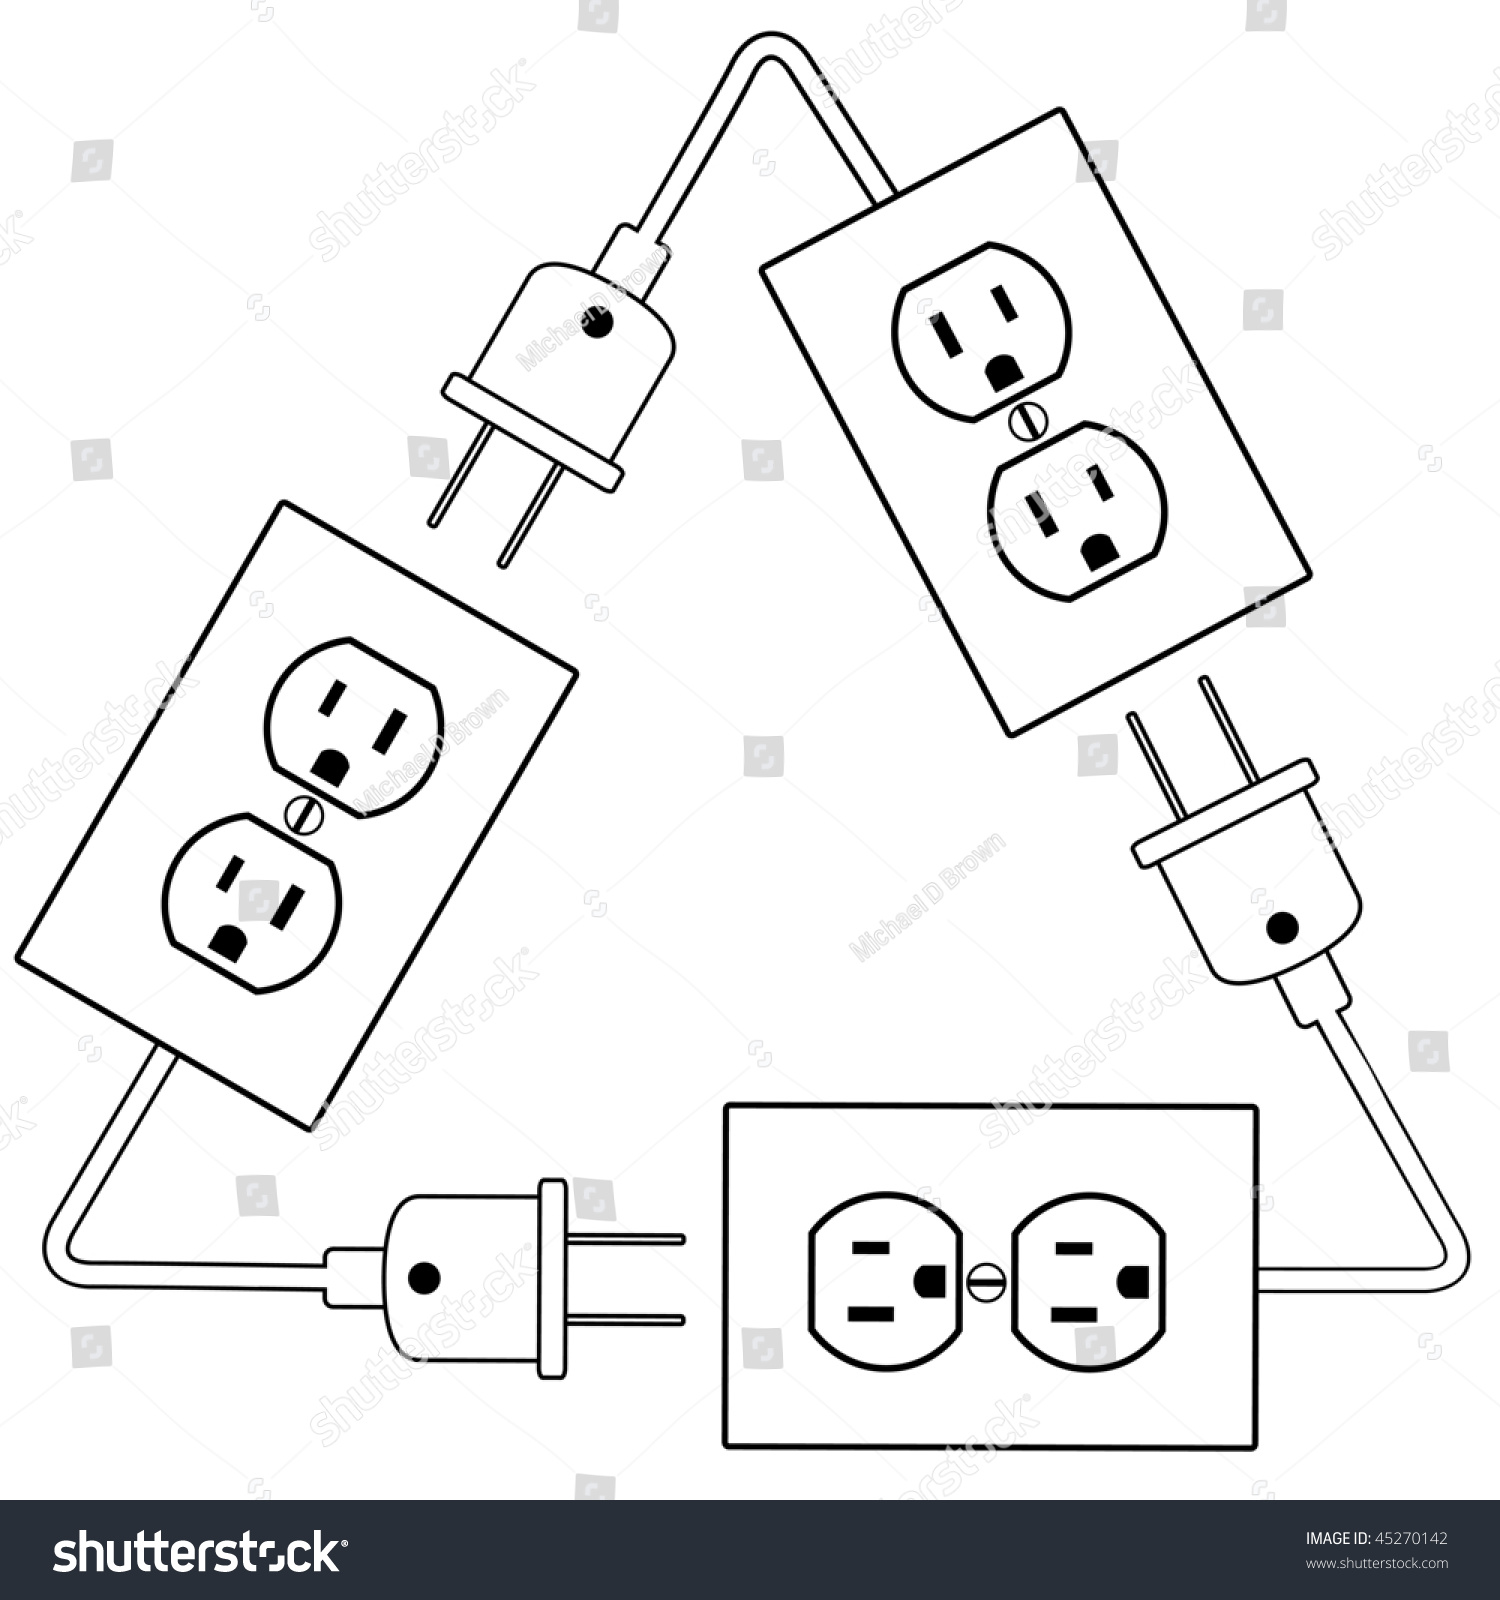 Outstanding Symbol Electrical Outlet Vignette - Best Images for ...